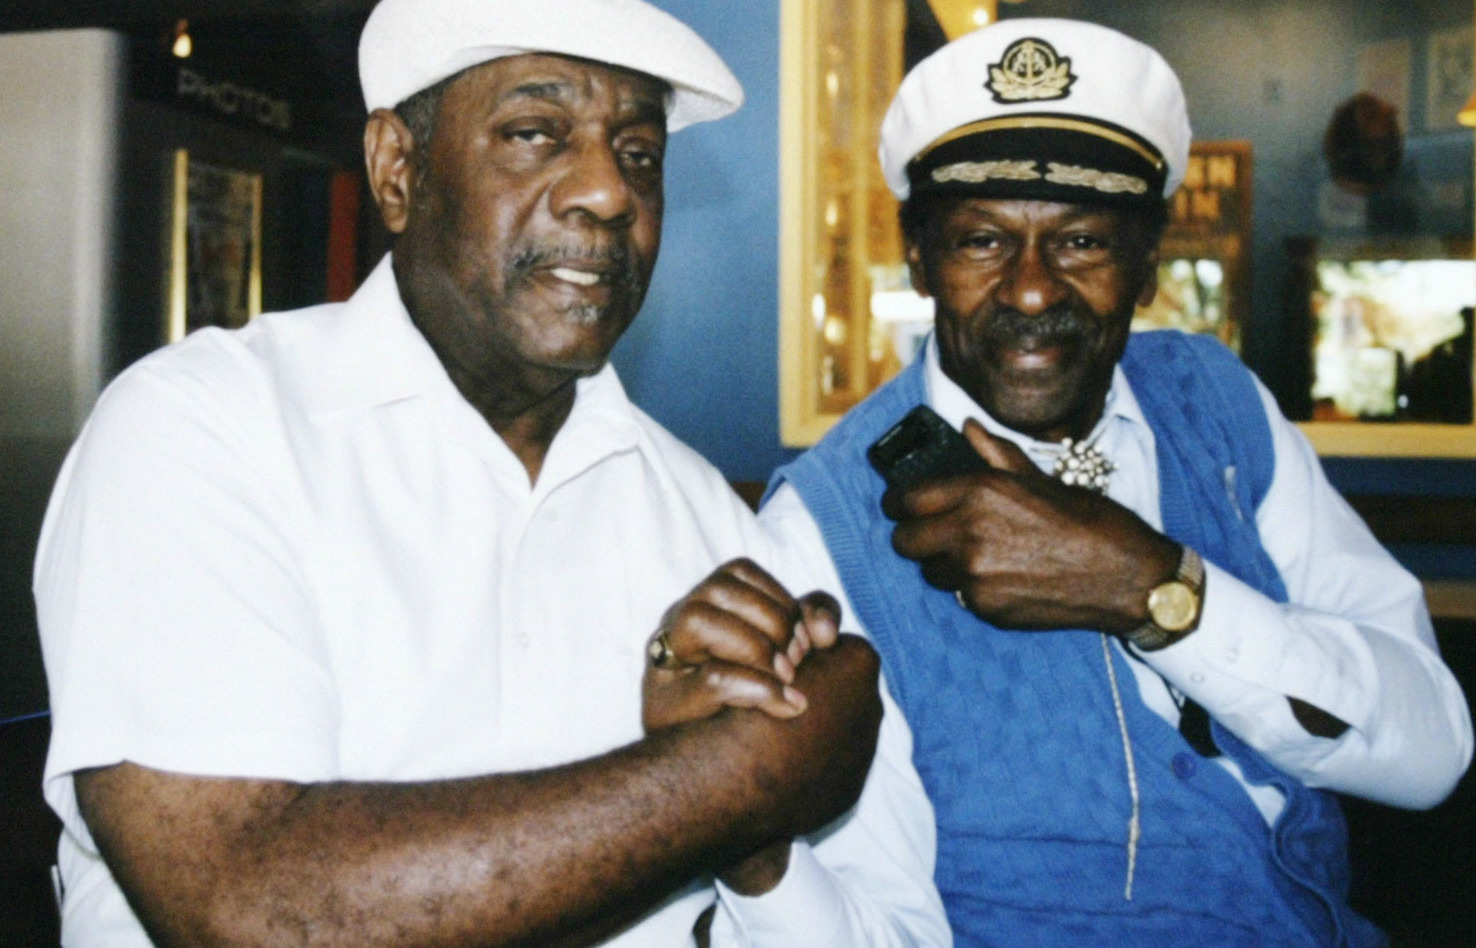 Johnnie Johnson (left) and Chuck Berry pose in this undated AP photo.